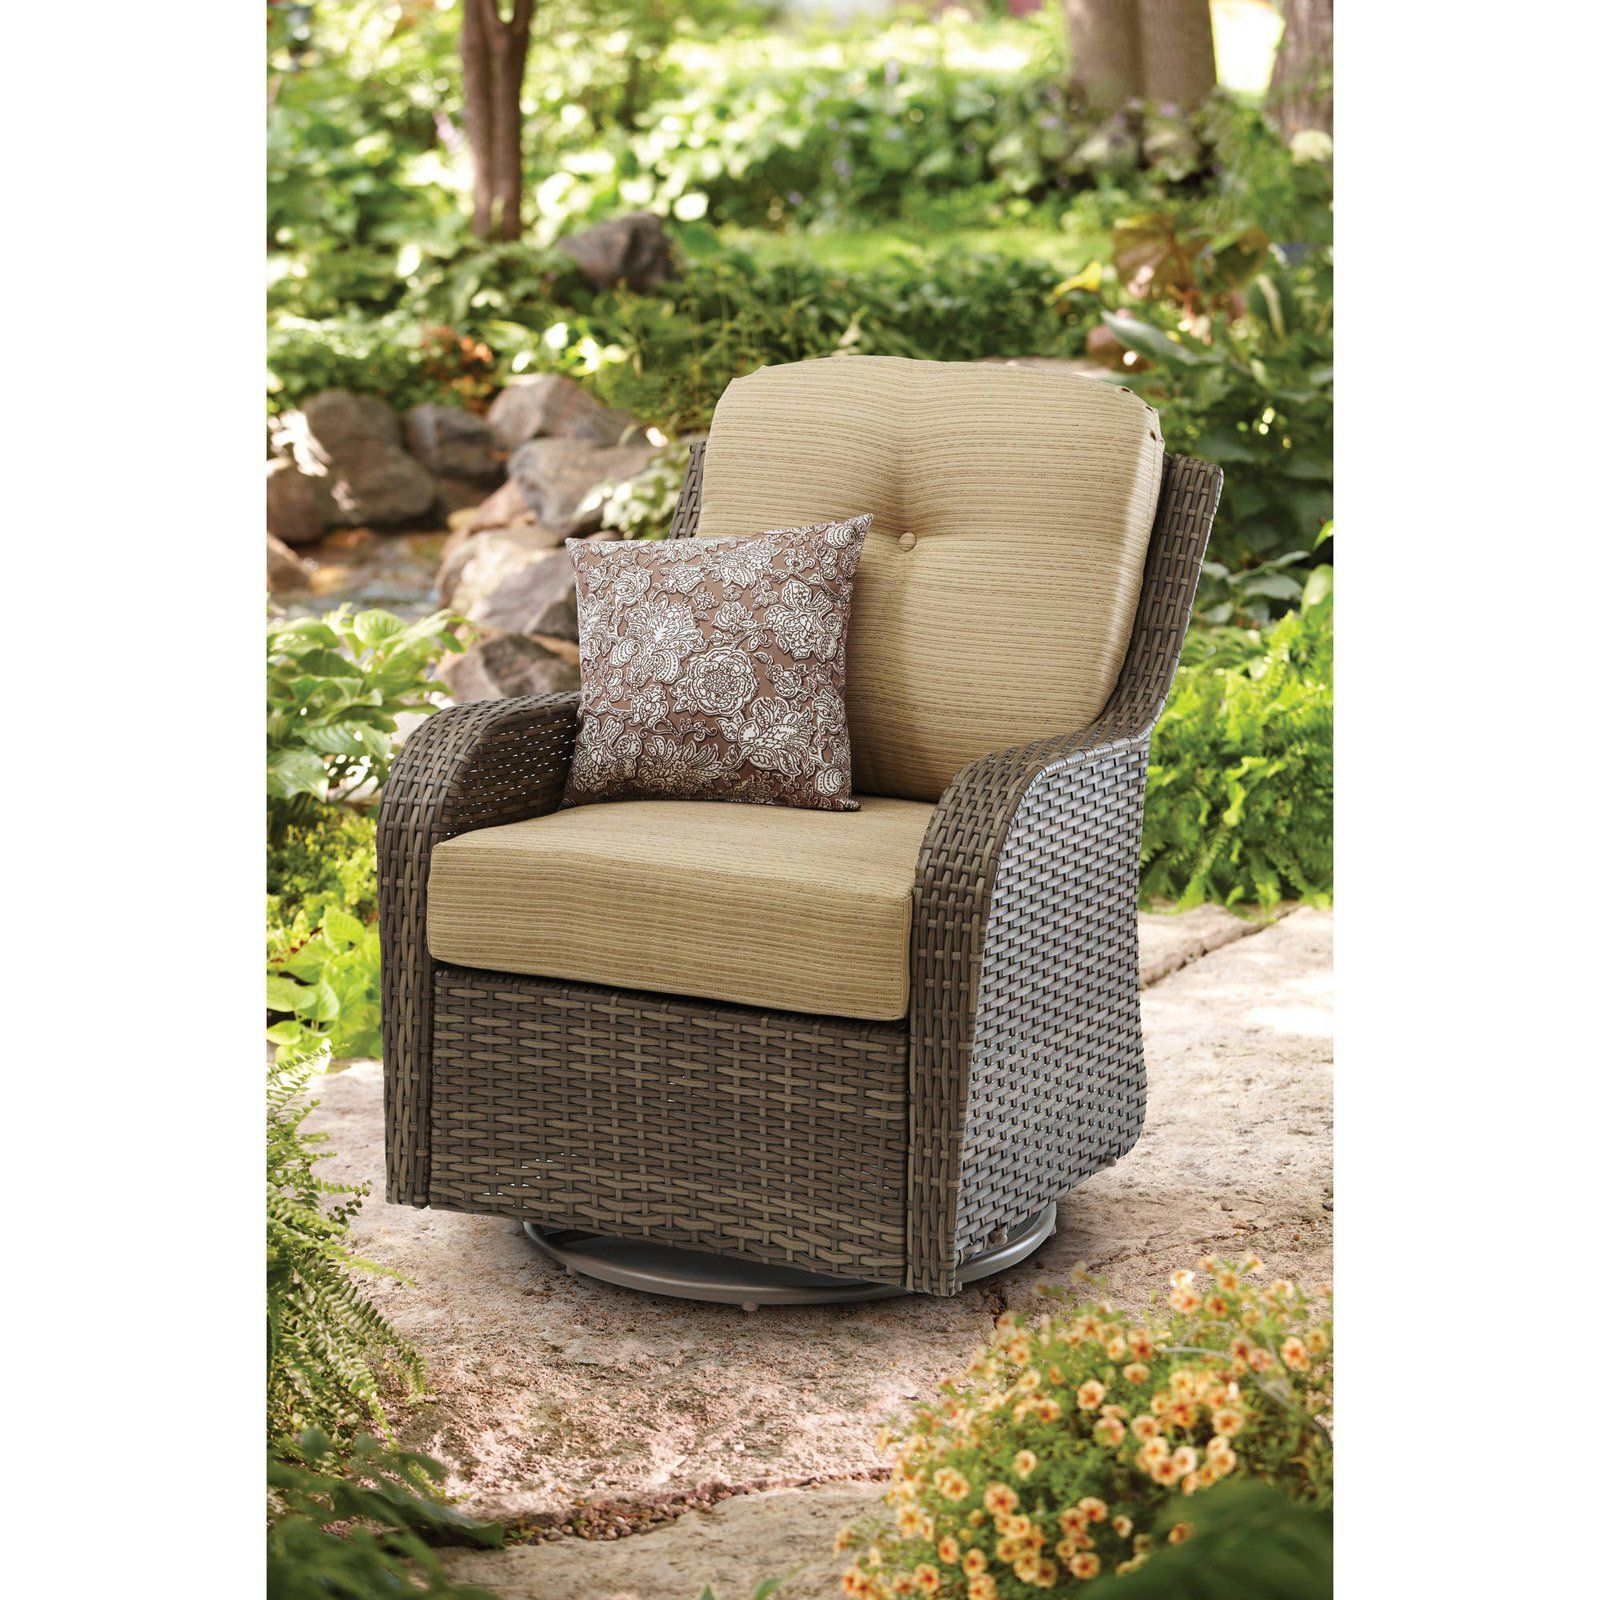 Outdoor better homes gardens mckinley crossing all motion swivel rocking chair